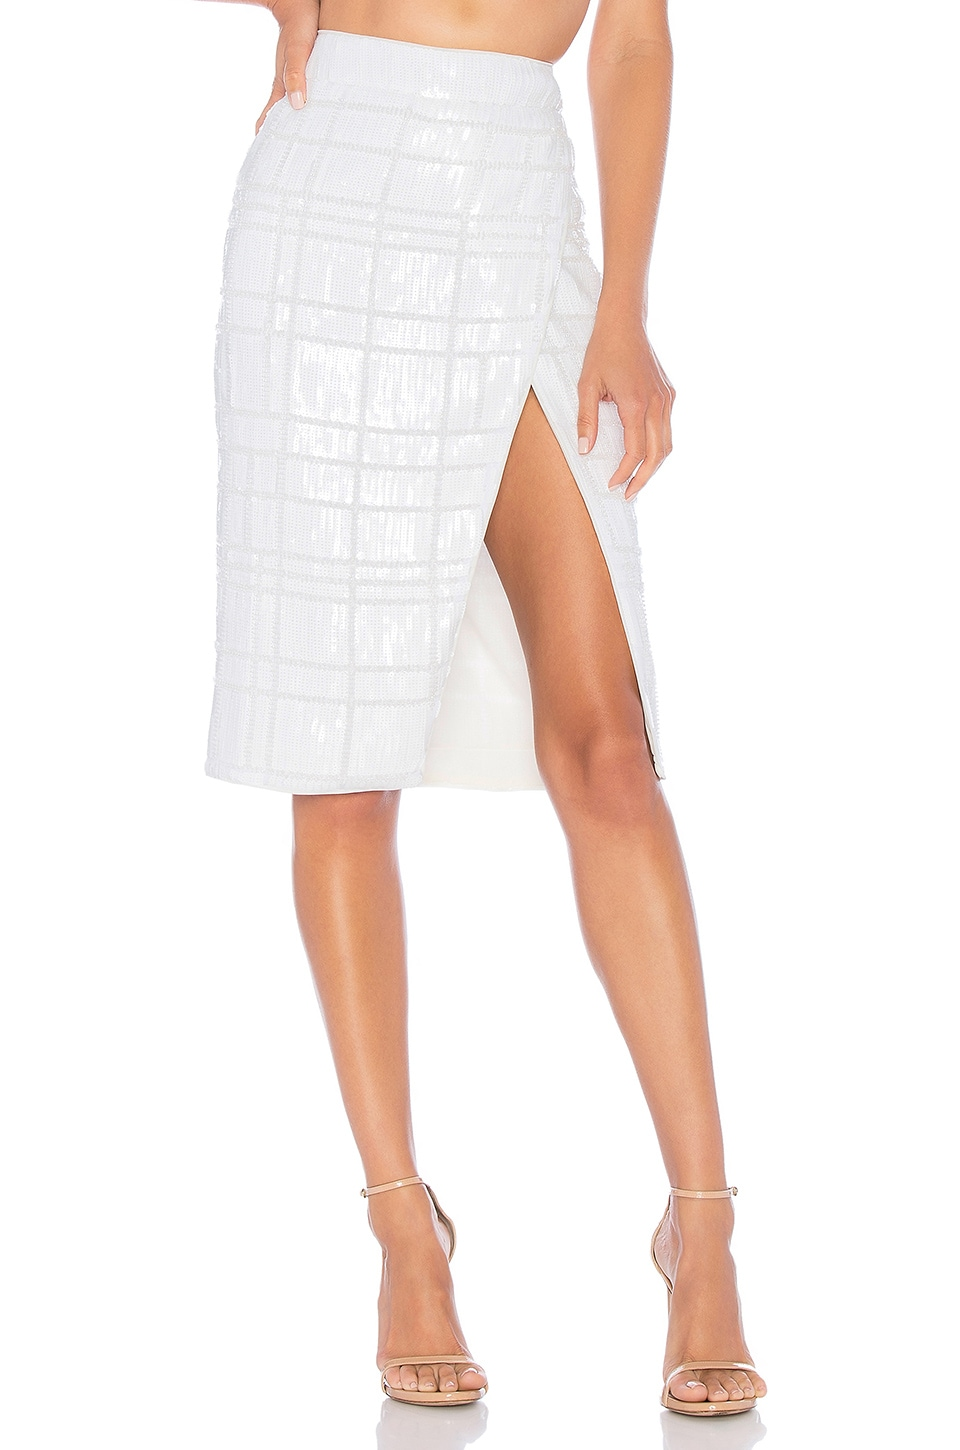 X by NBD Levi Skirt in Ivory Shine